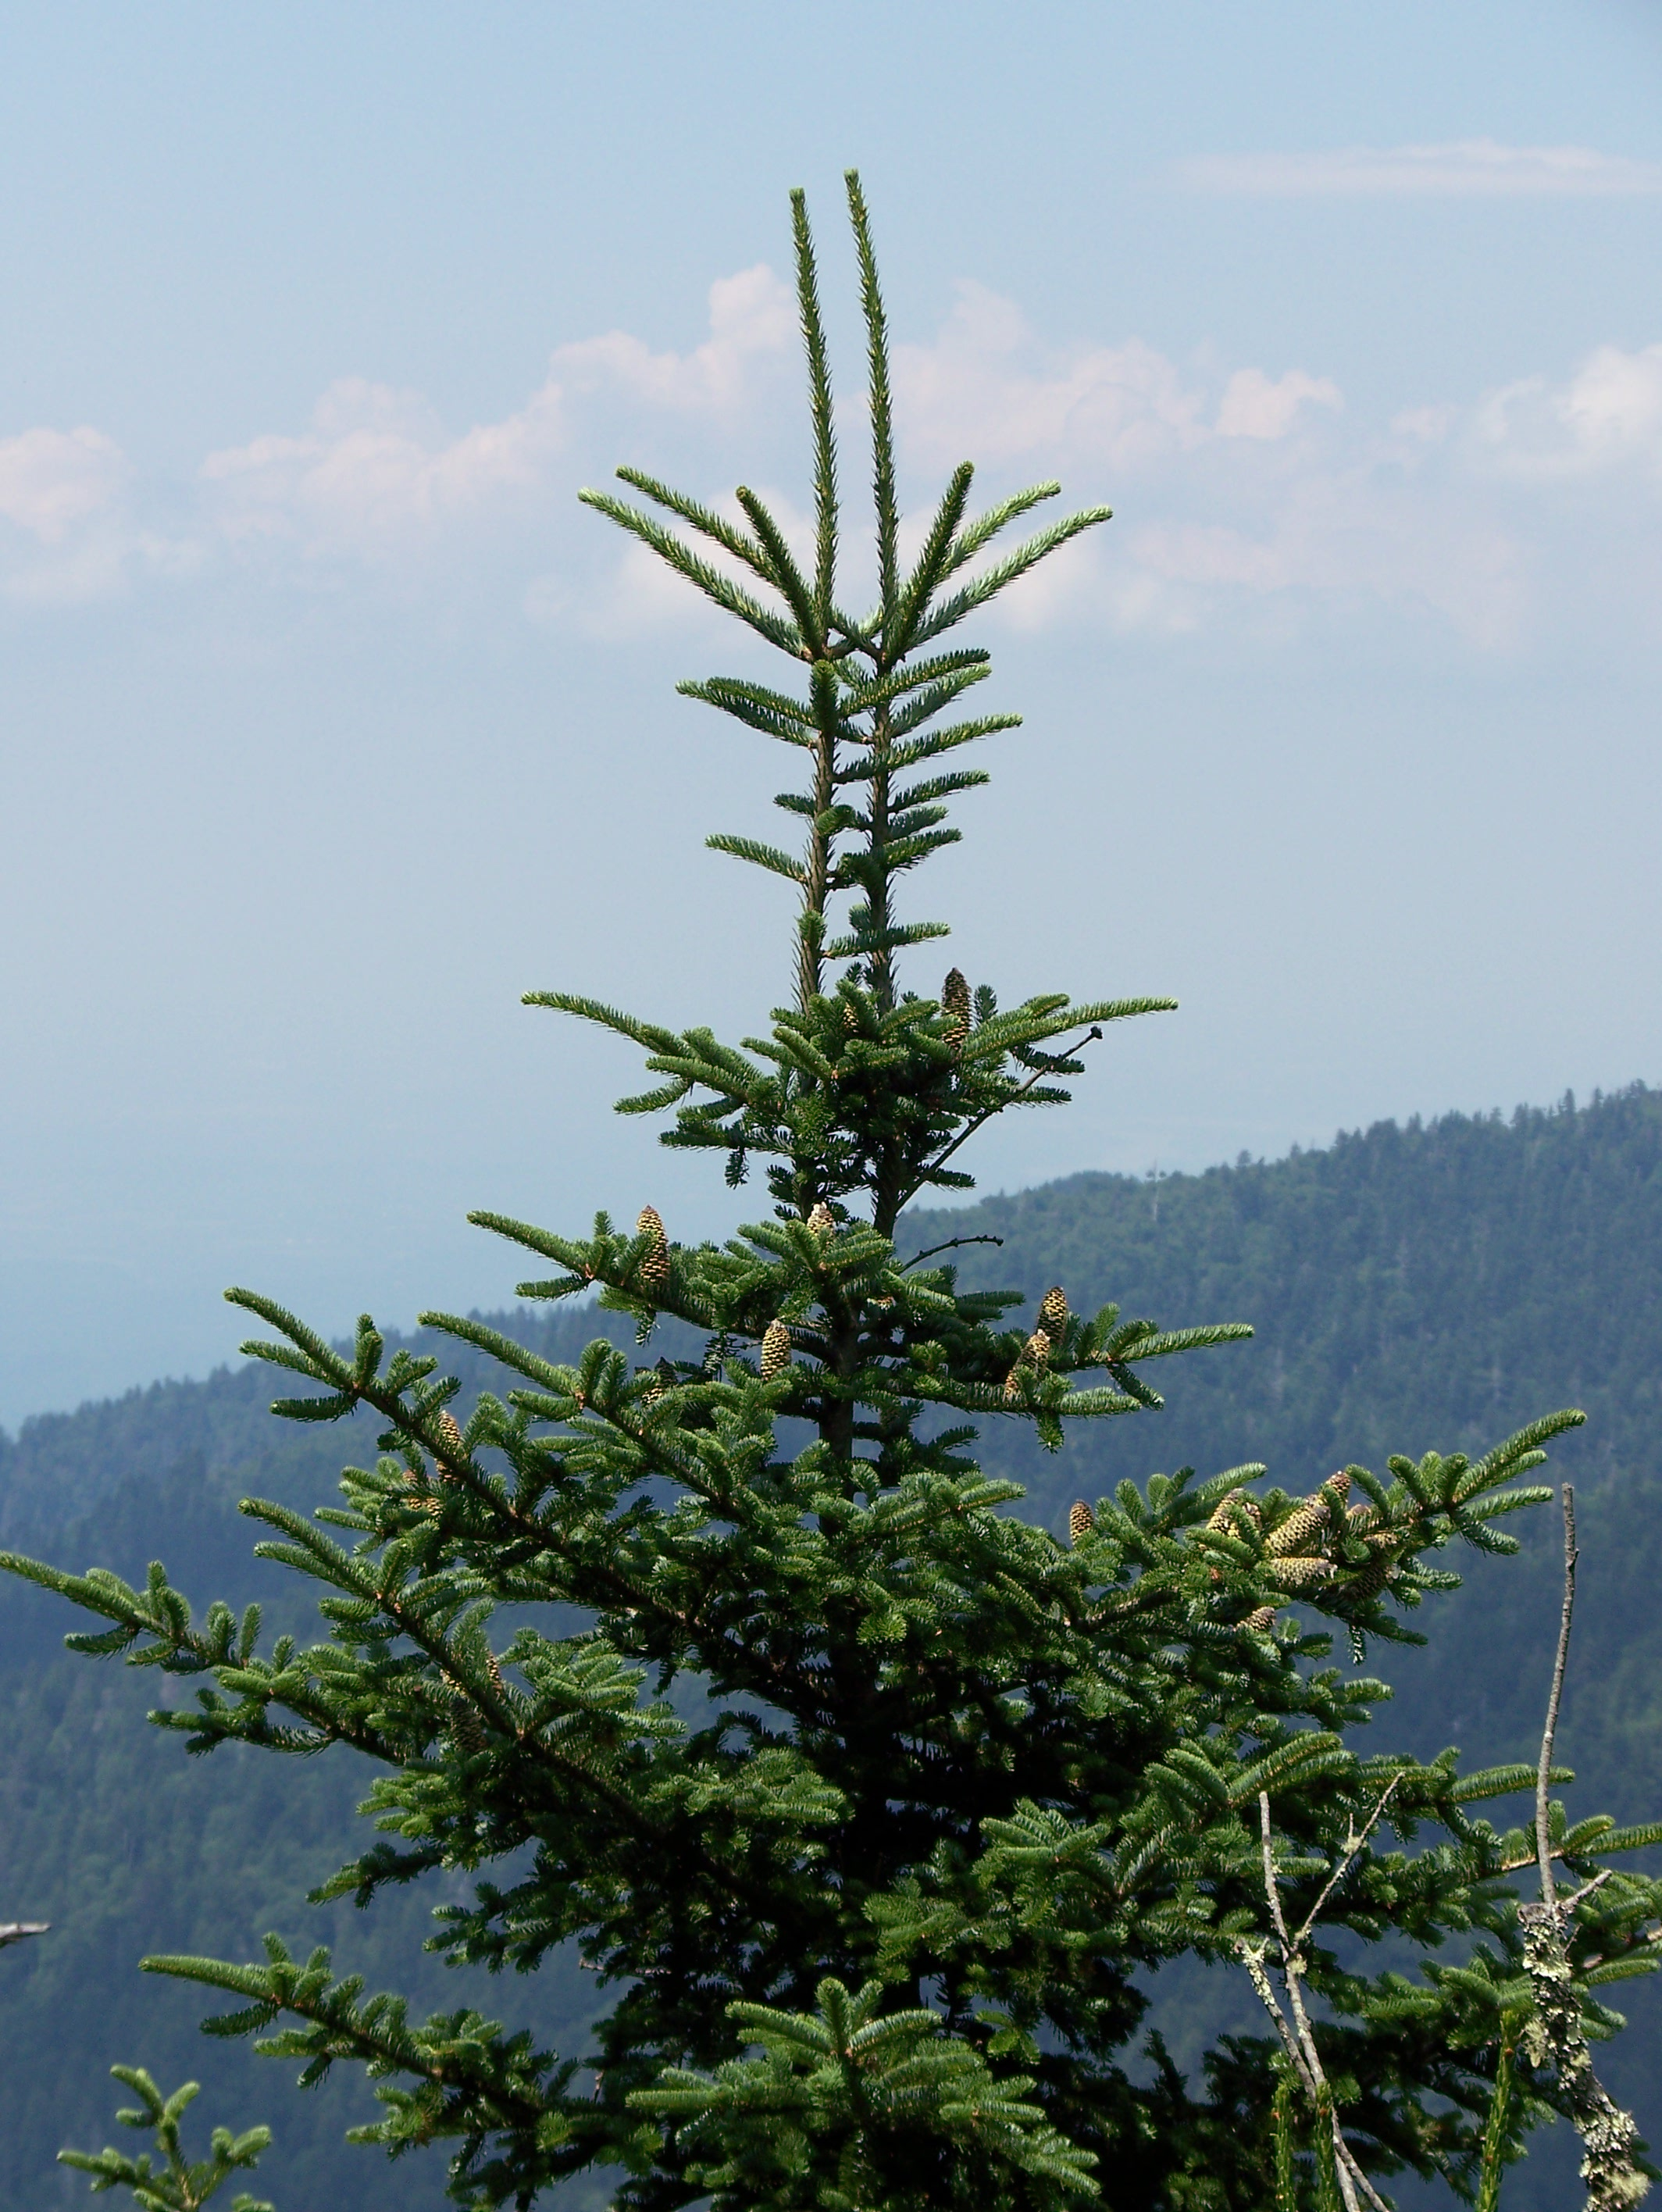 The Year of the Fir Cone